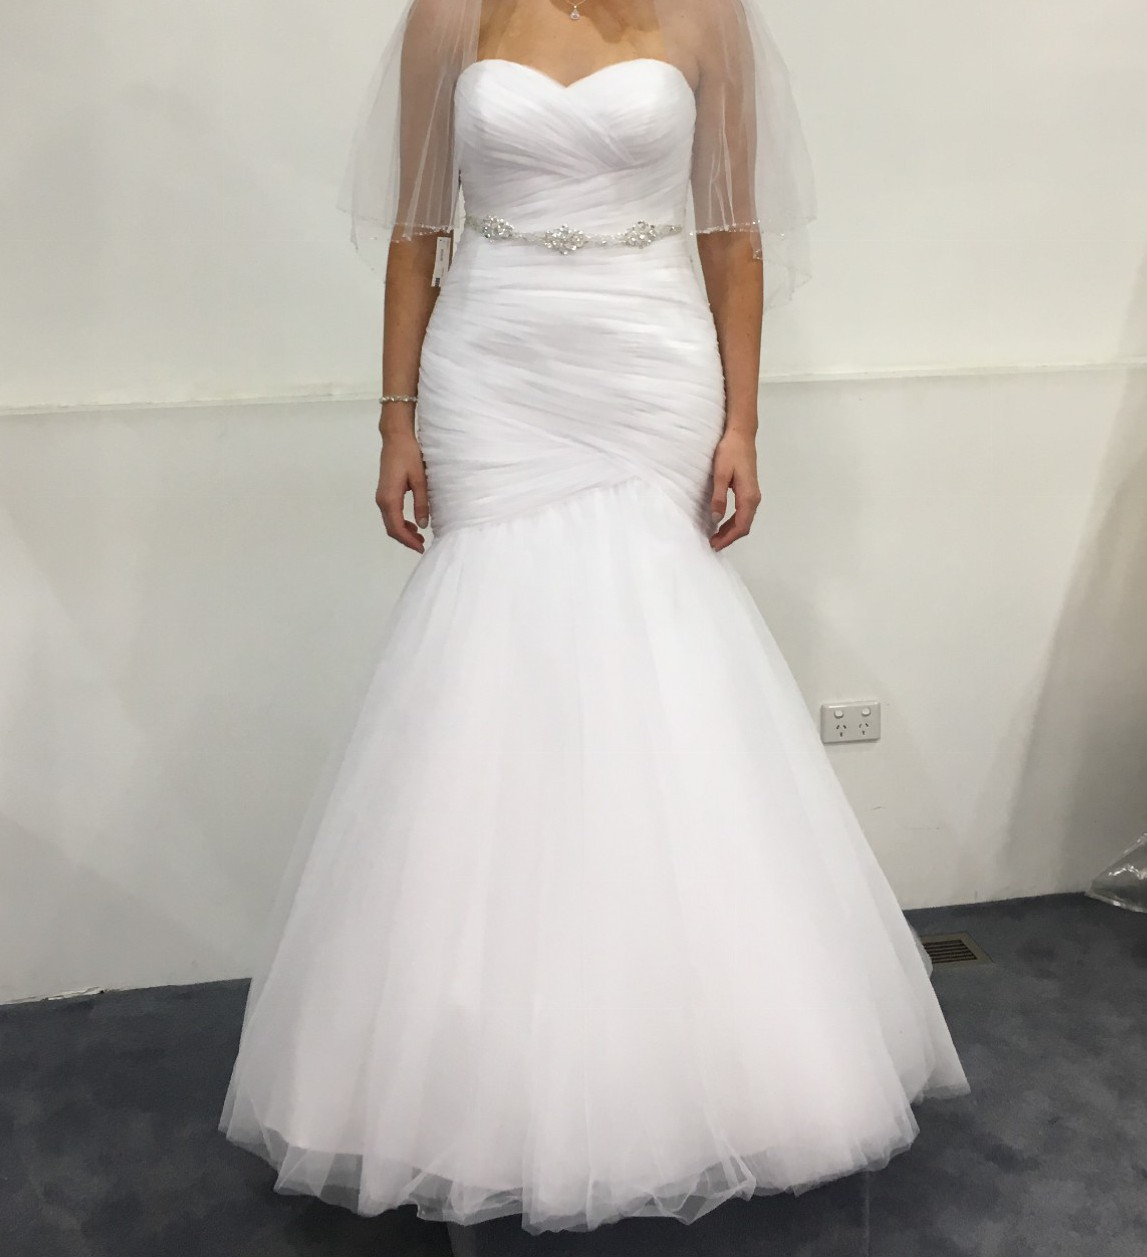 Morilee 5108 second hand wedding dress on sale 70 off for Second hand mori lee wedding dresses